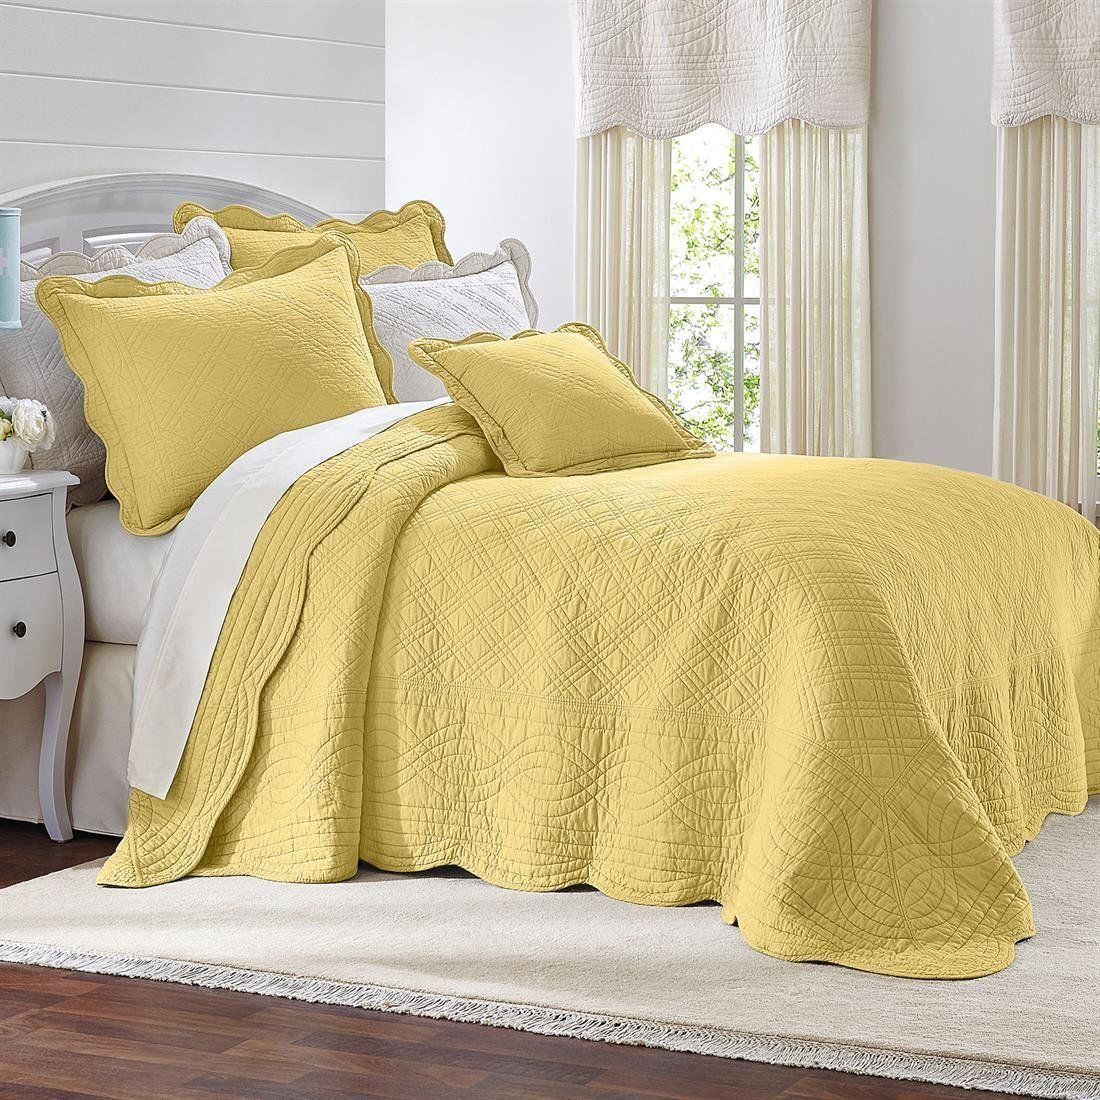 Cotton Oversized Quilted Bedspread With Scalloped Border In Twin Full Queen King Bed Spreads Home Bedroom Design